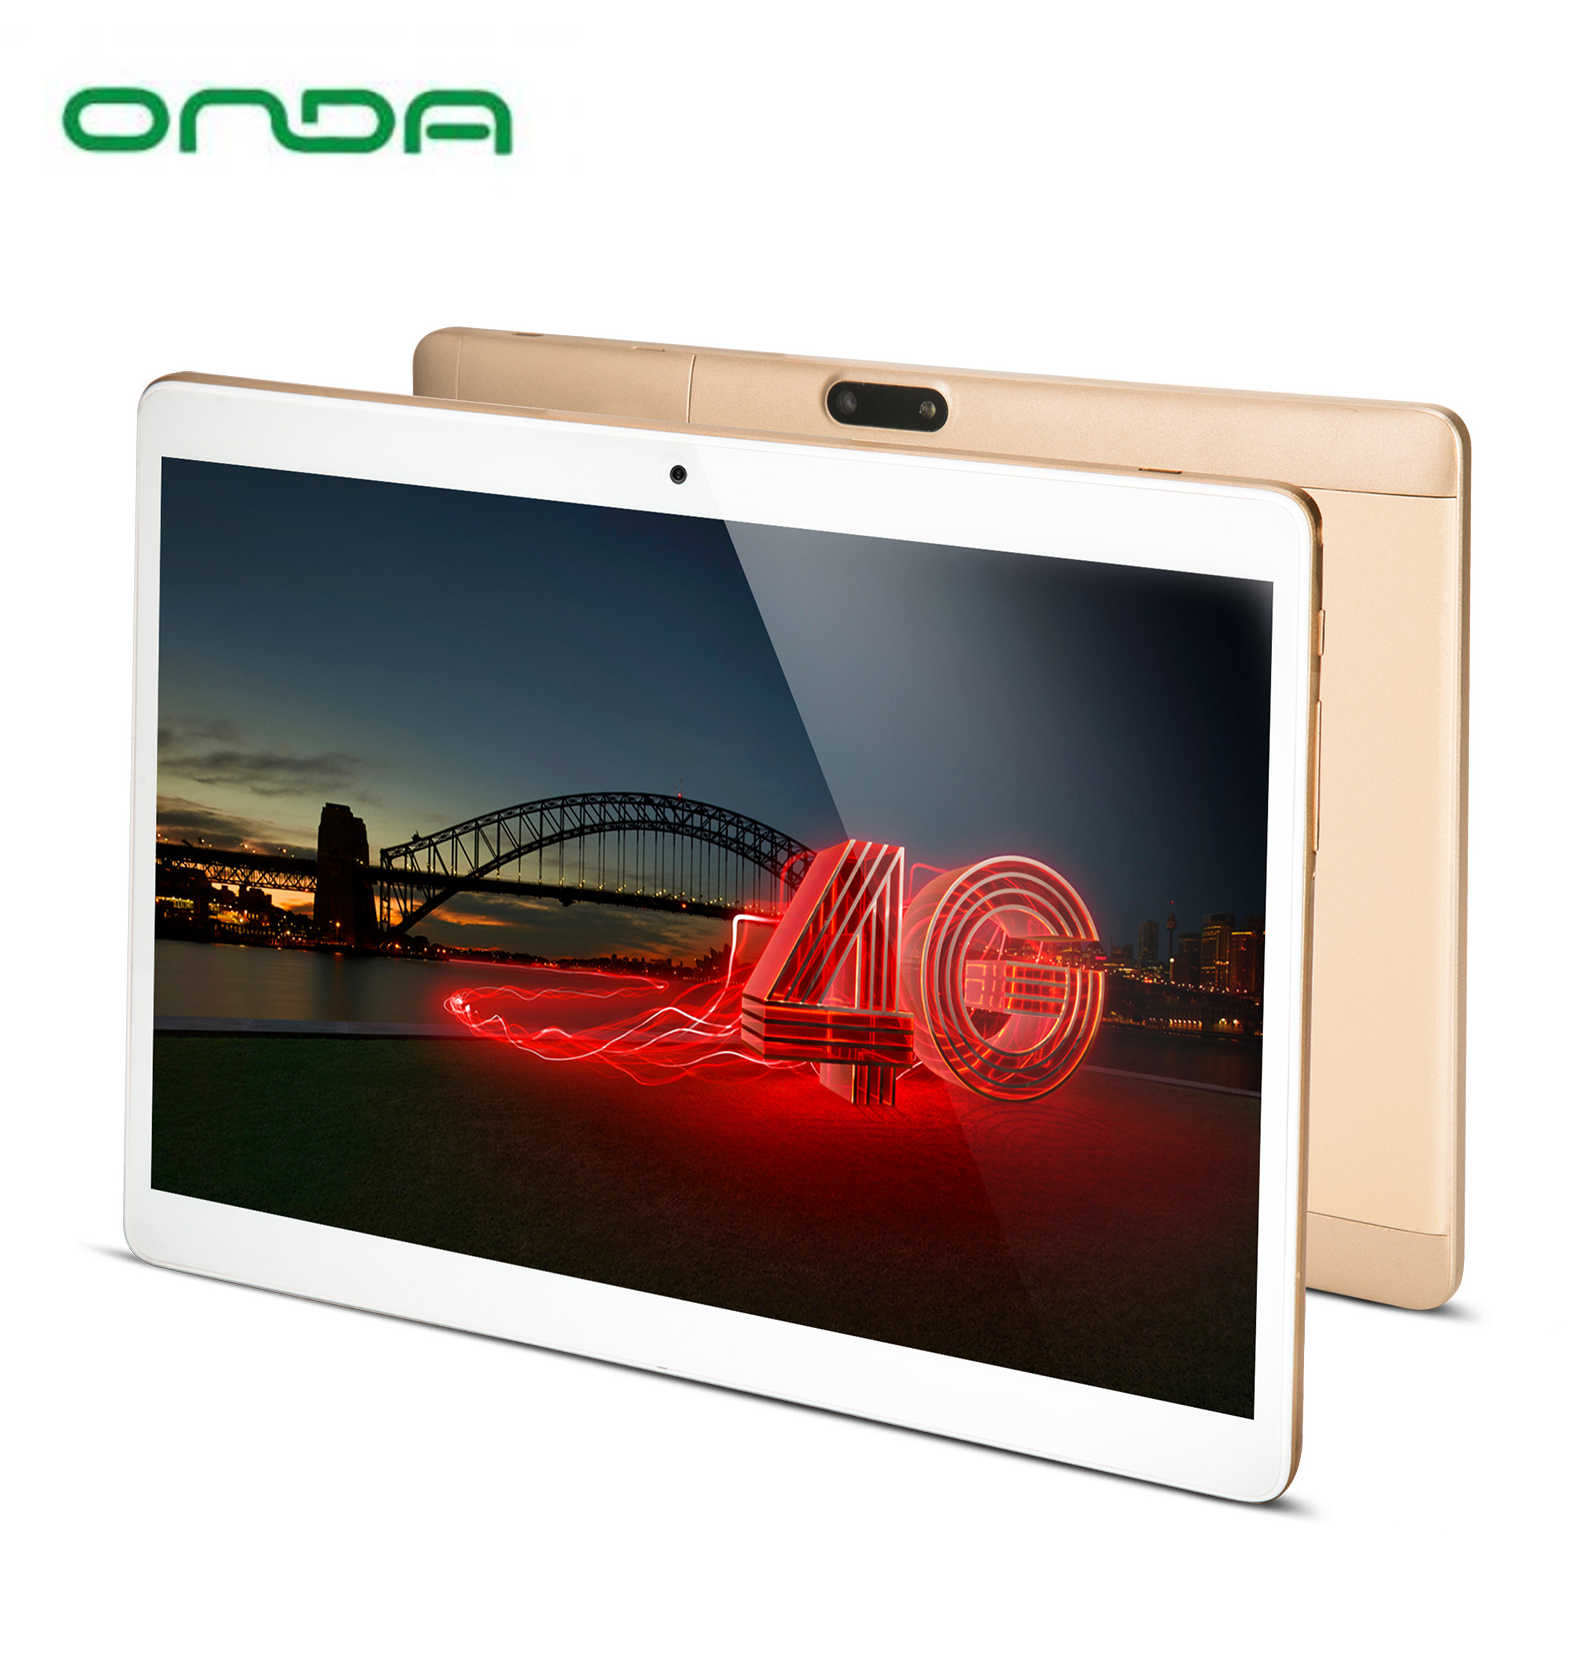 10.1 inch Phone Call 4G Tablet PC onda V10 4G 2GB Ram 32GB Rom 1920*1200 IPS MTK6753 Octa-Core Android 7.0 Dual-SIM GPS WiFi